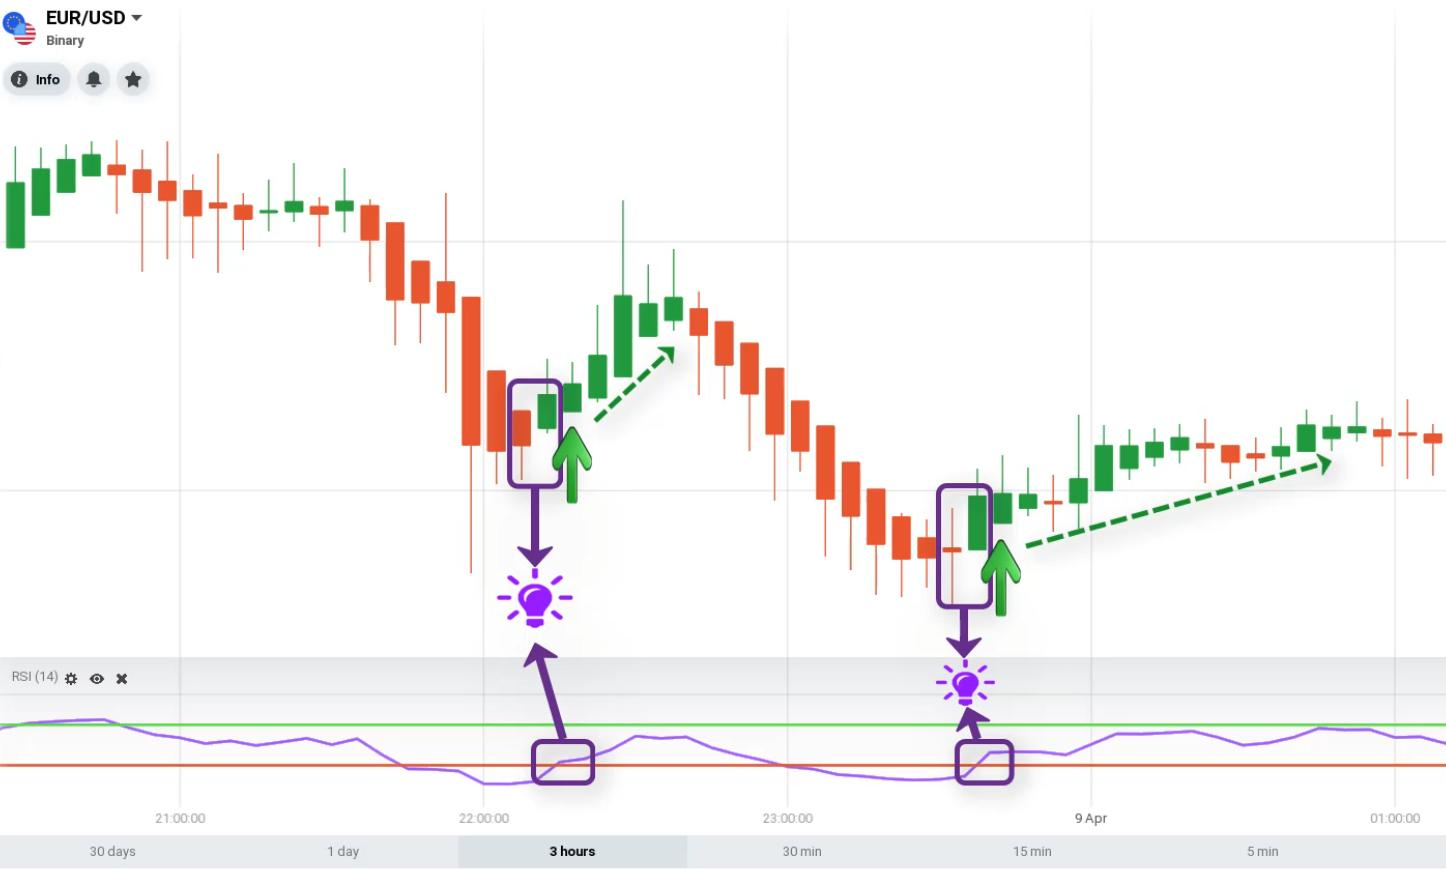 Trading strategy using RSI combined with Heiken Ashi candlestick chart